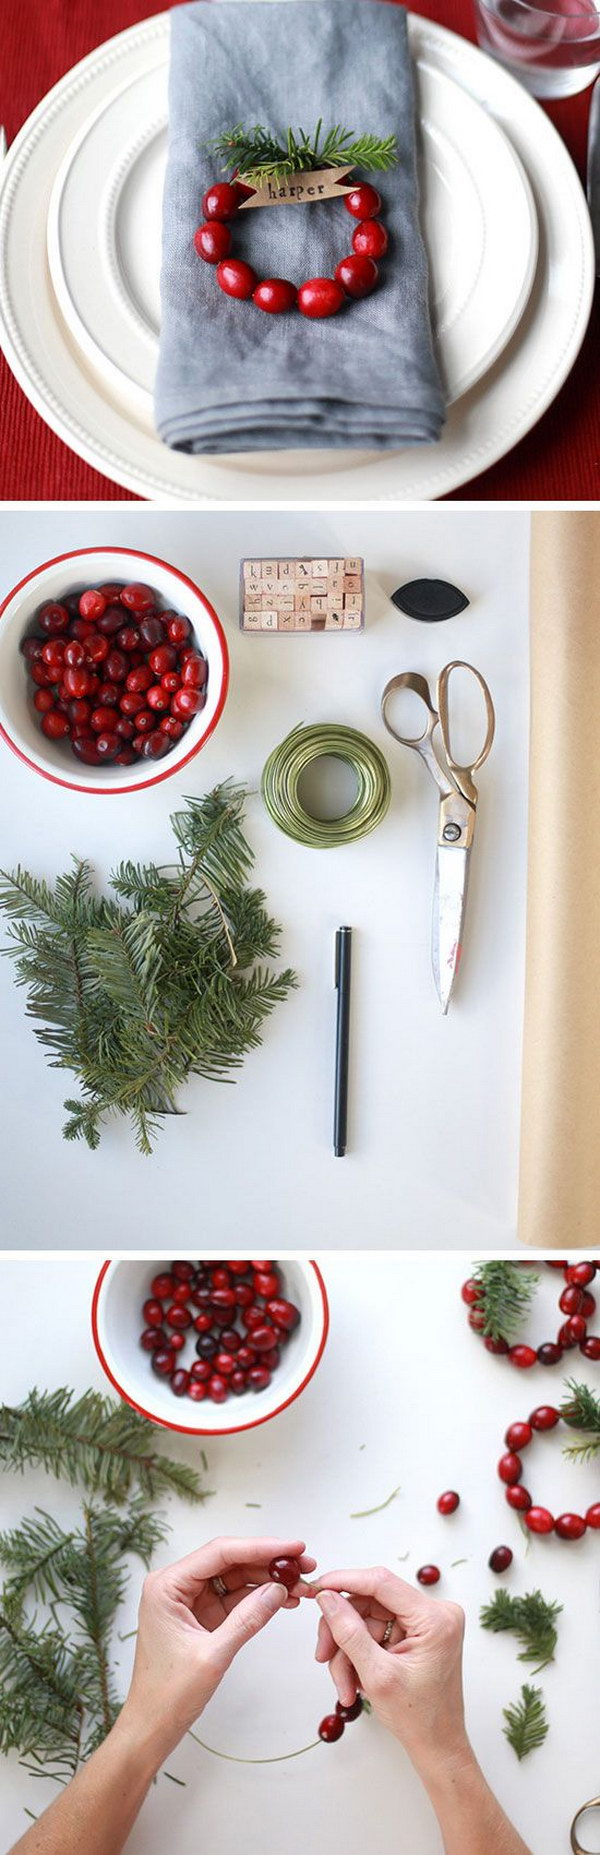 DIY Mini Cranberry Wreath Place Cards.